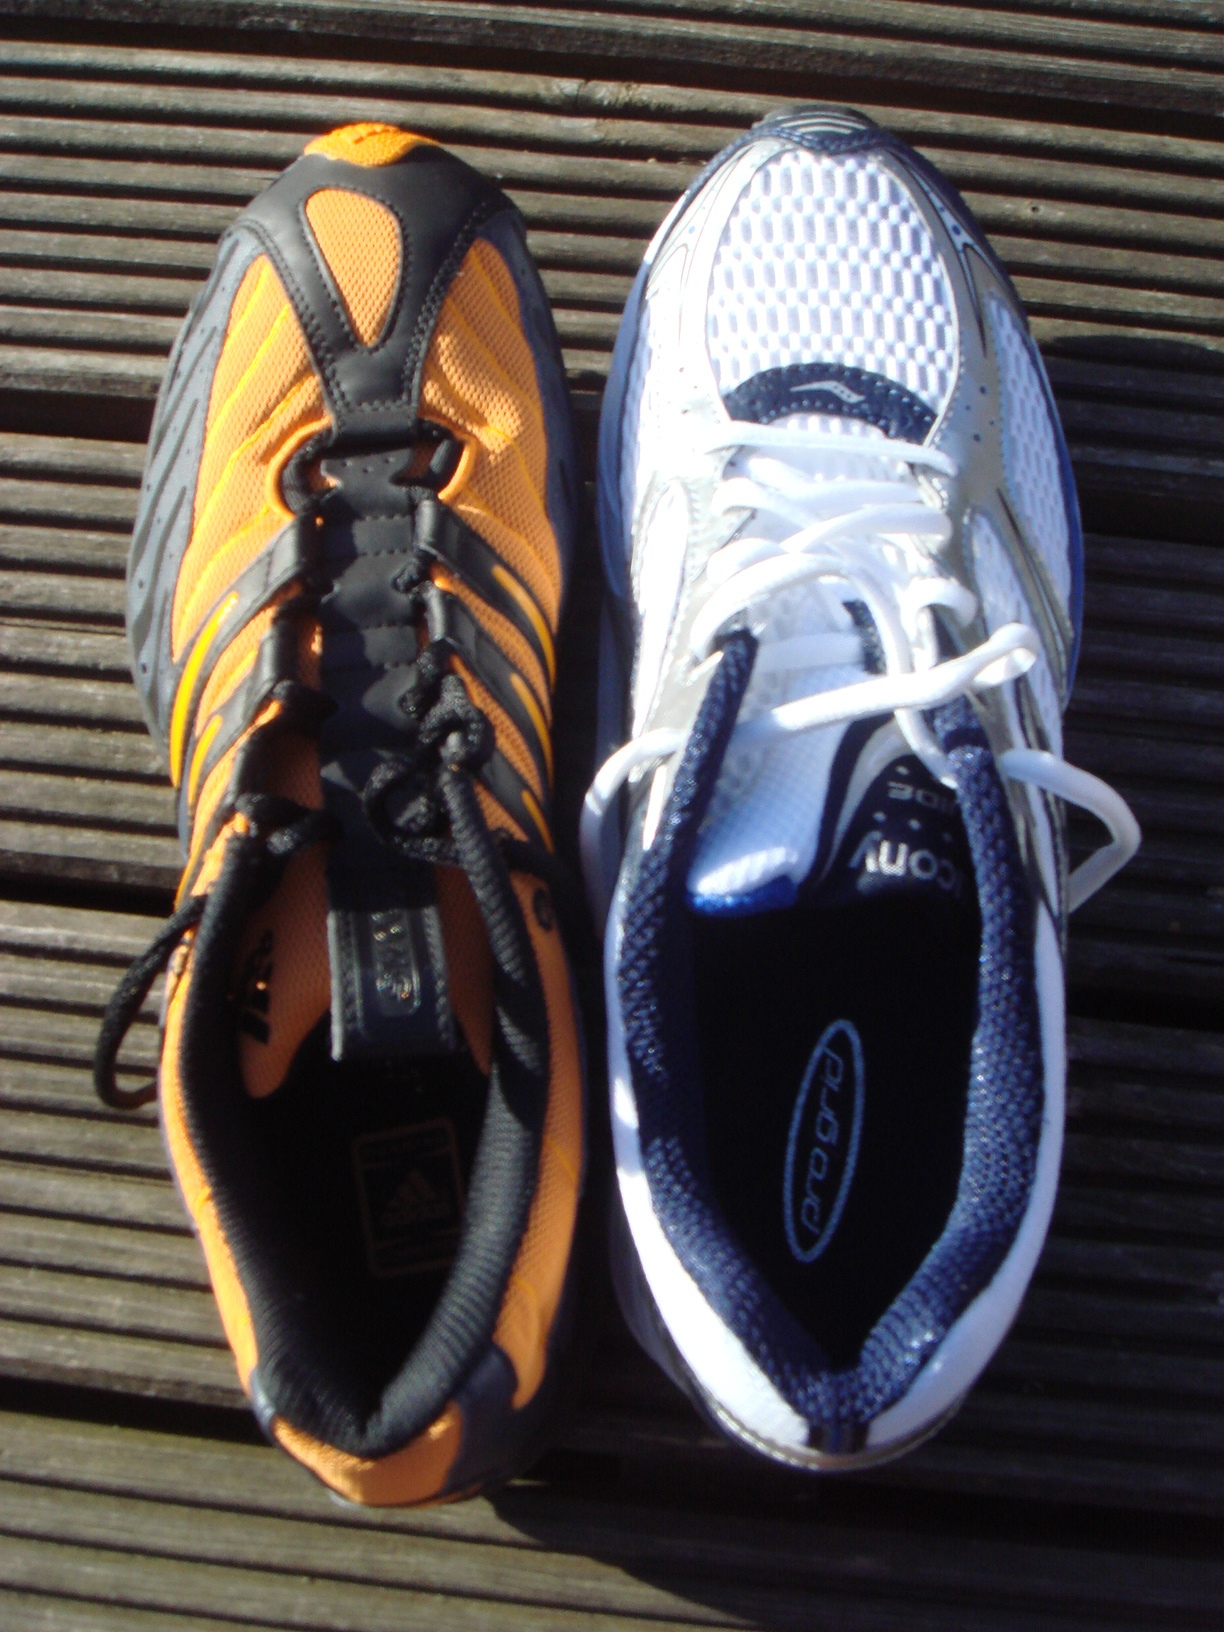 Okay So I Bought Two Pairs And The Other Pair Has An Orange Right Shoe Before You Start To Worry